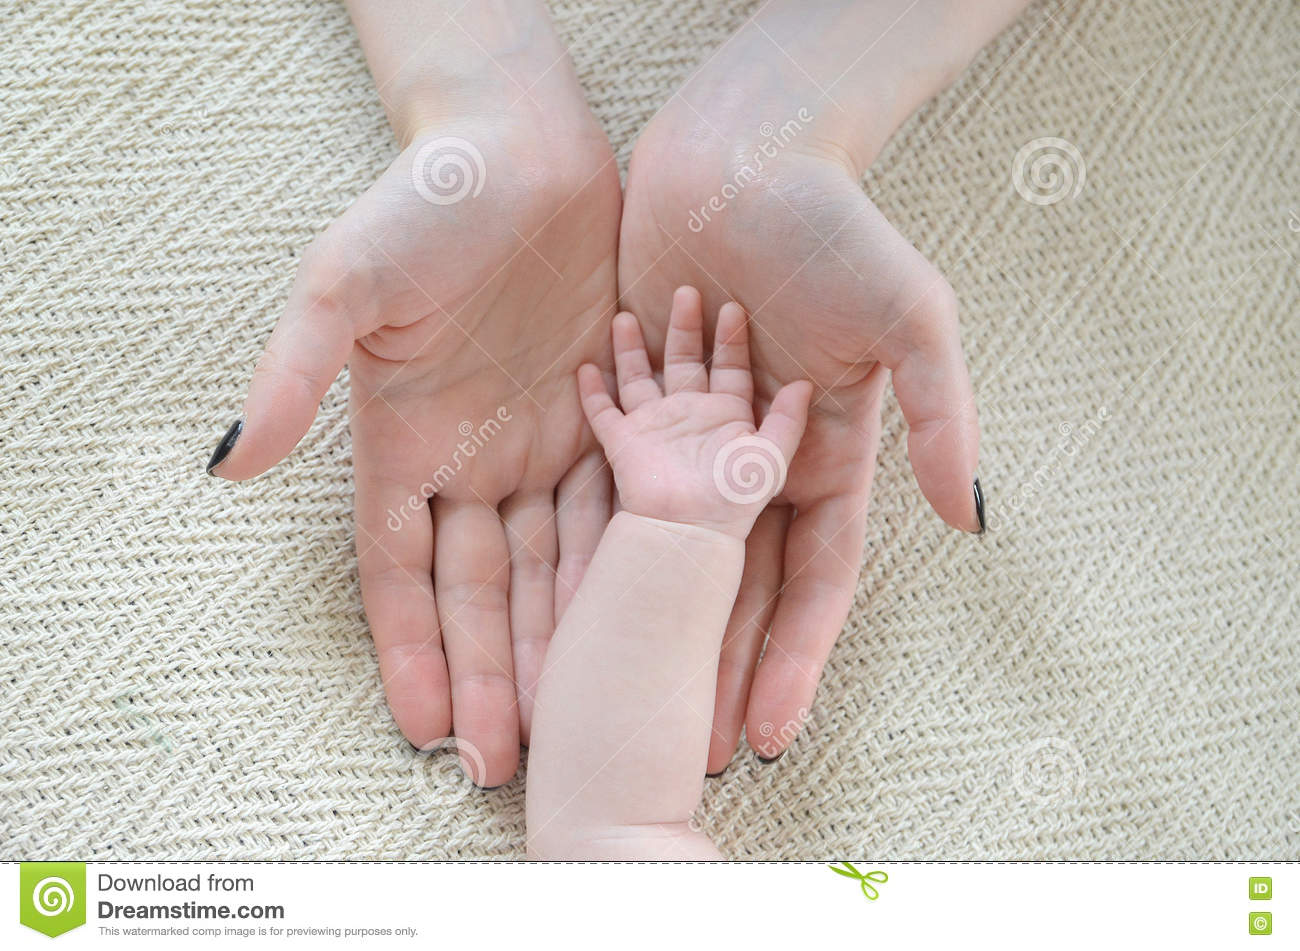 Little child's hand in mother's arms